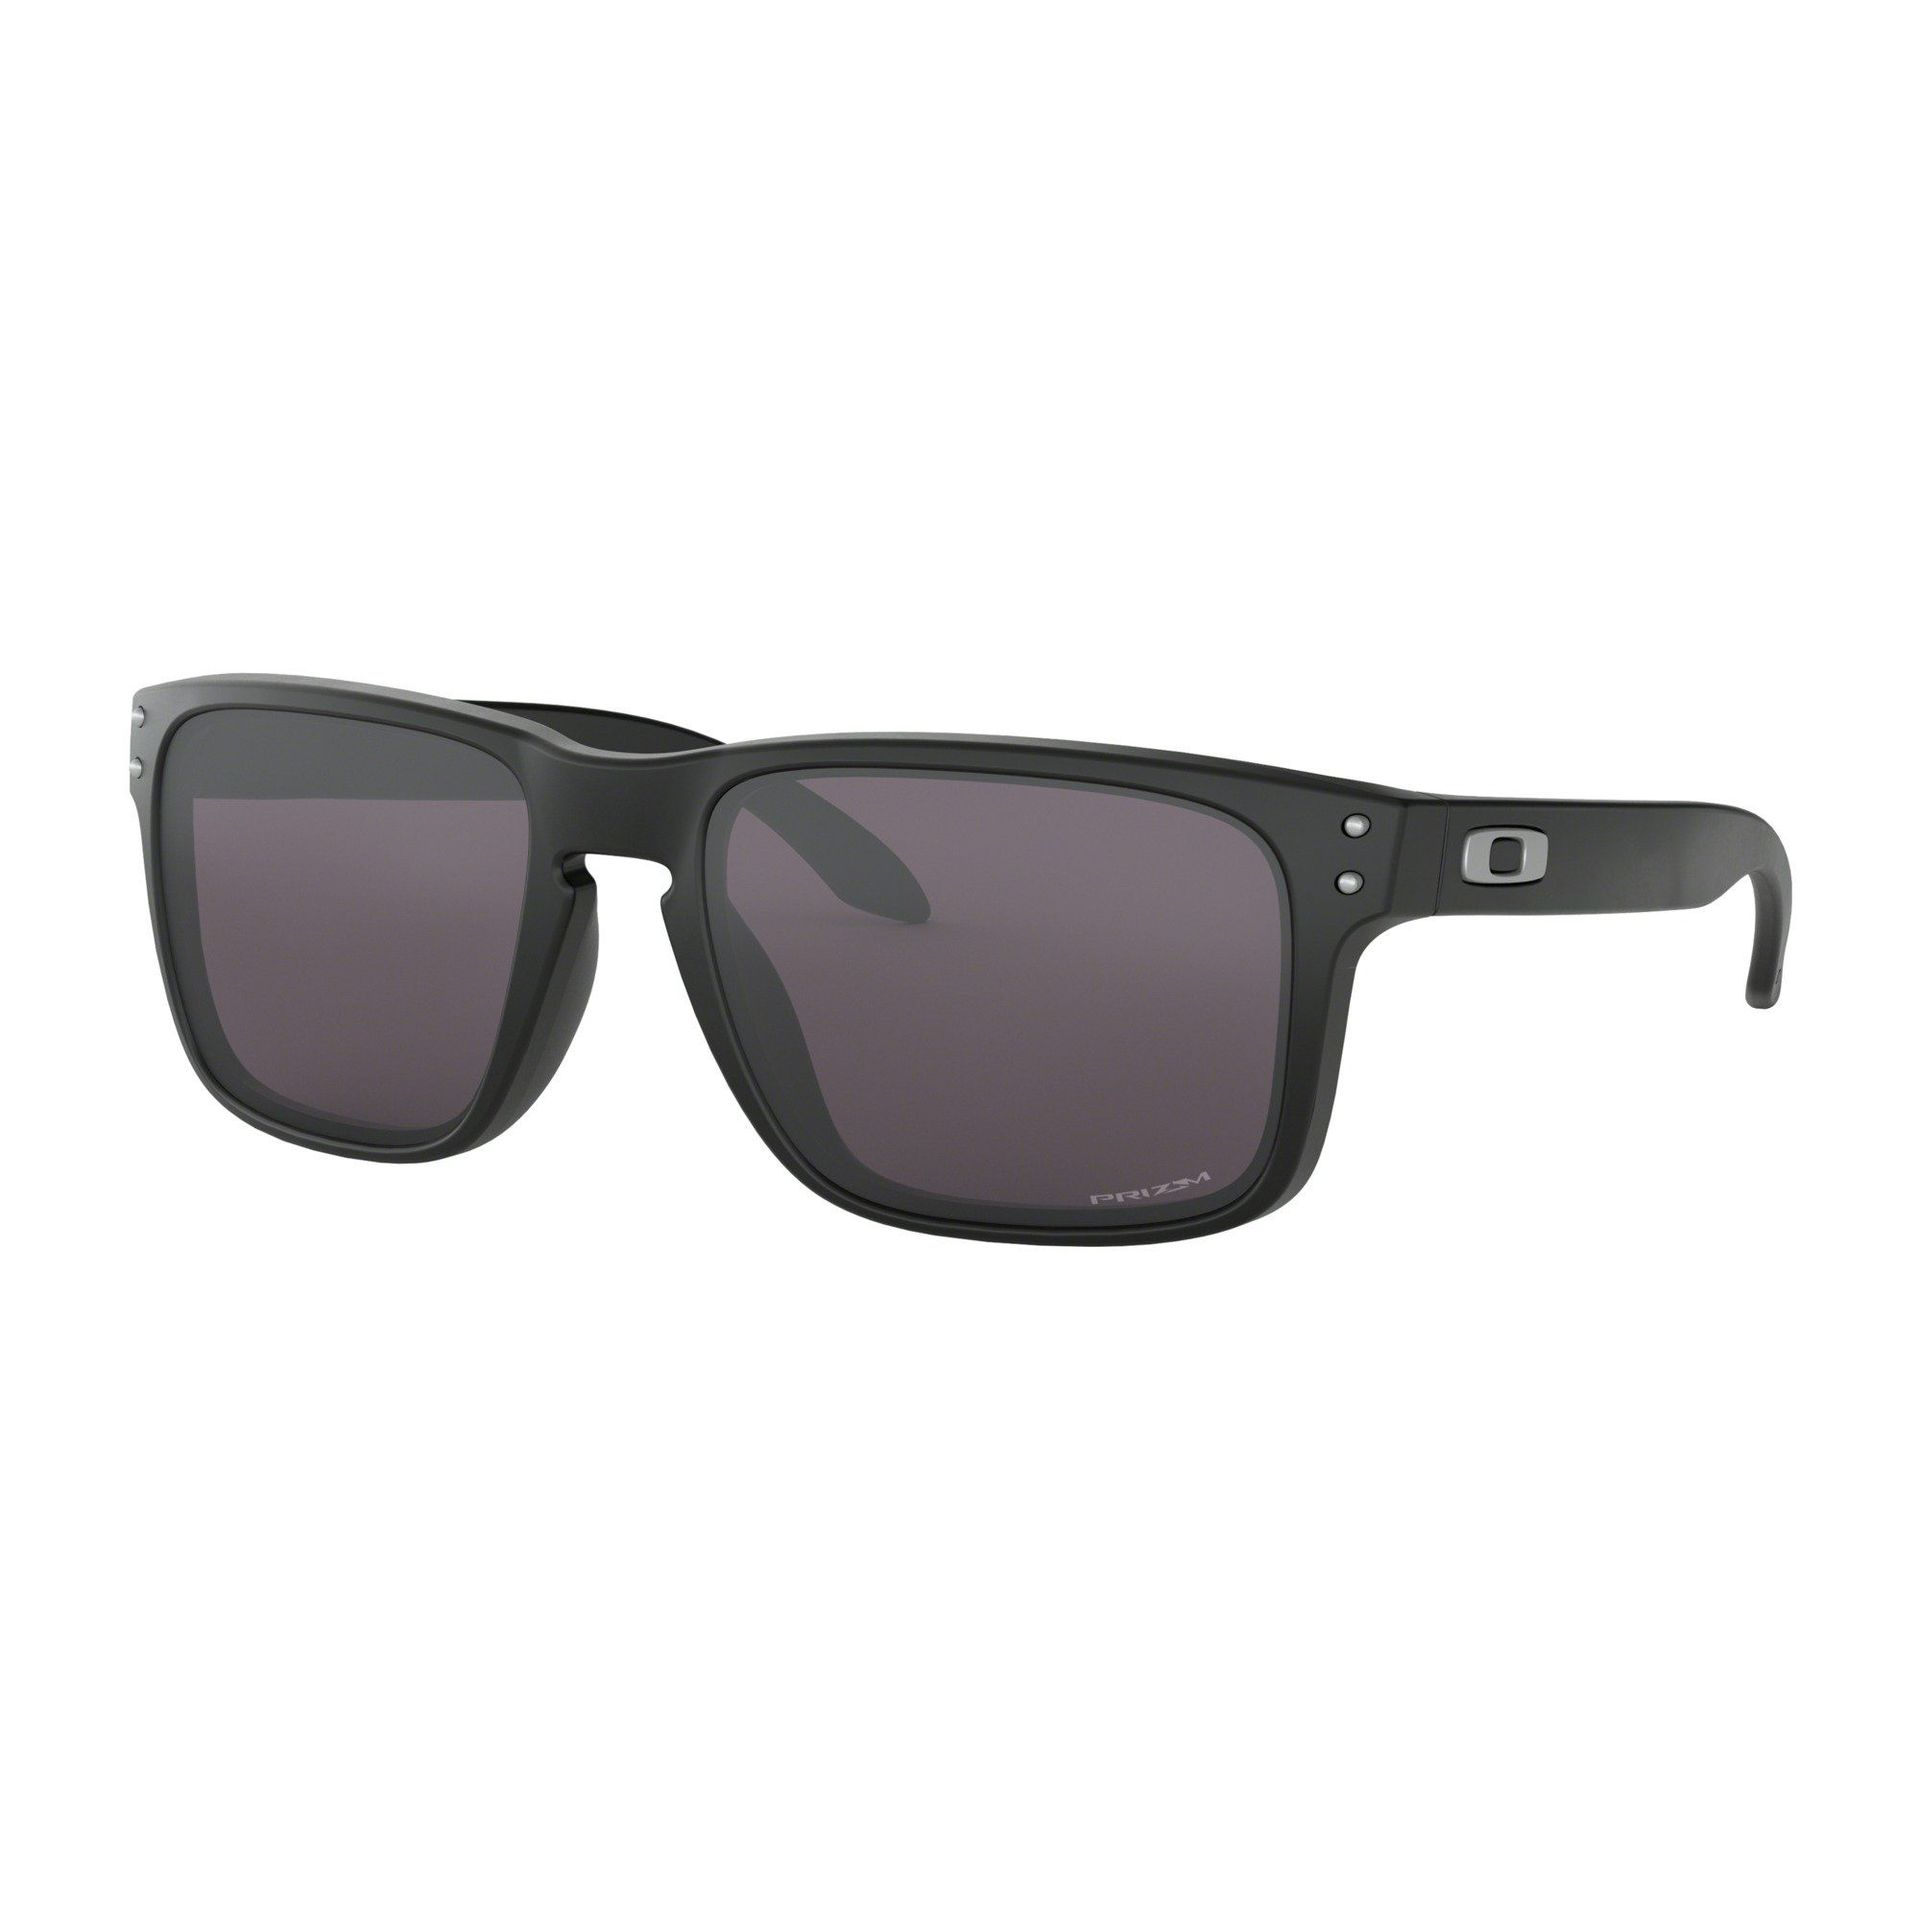 OKULARY OAKLEY HOLBROOK MATTE BLACK|PRIZM GREY 1